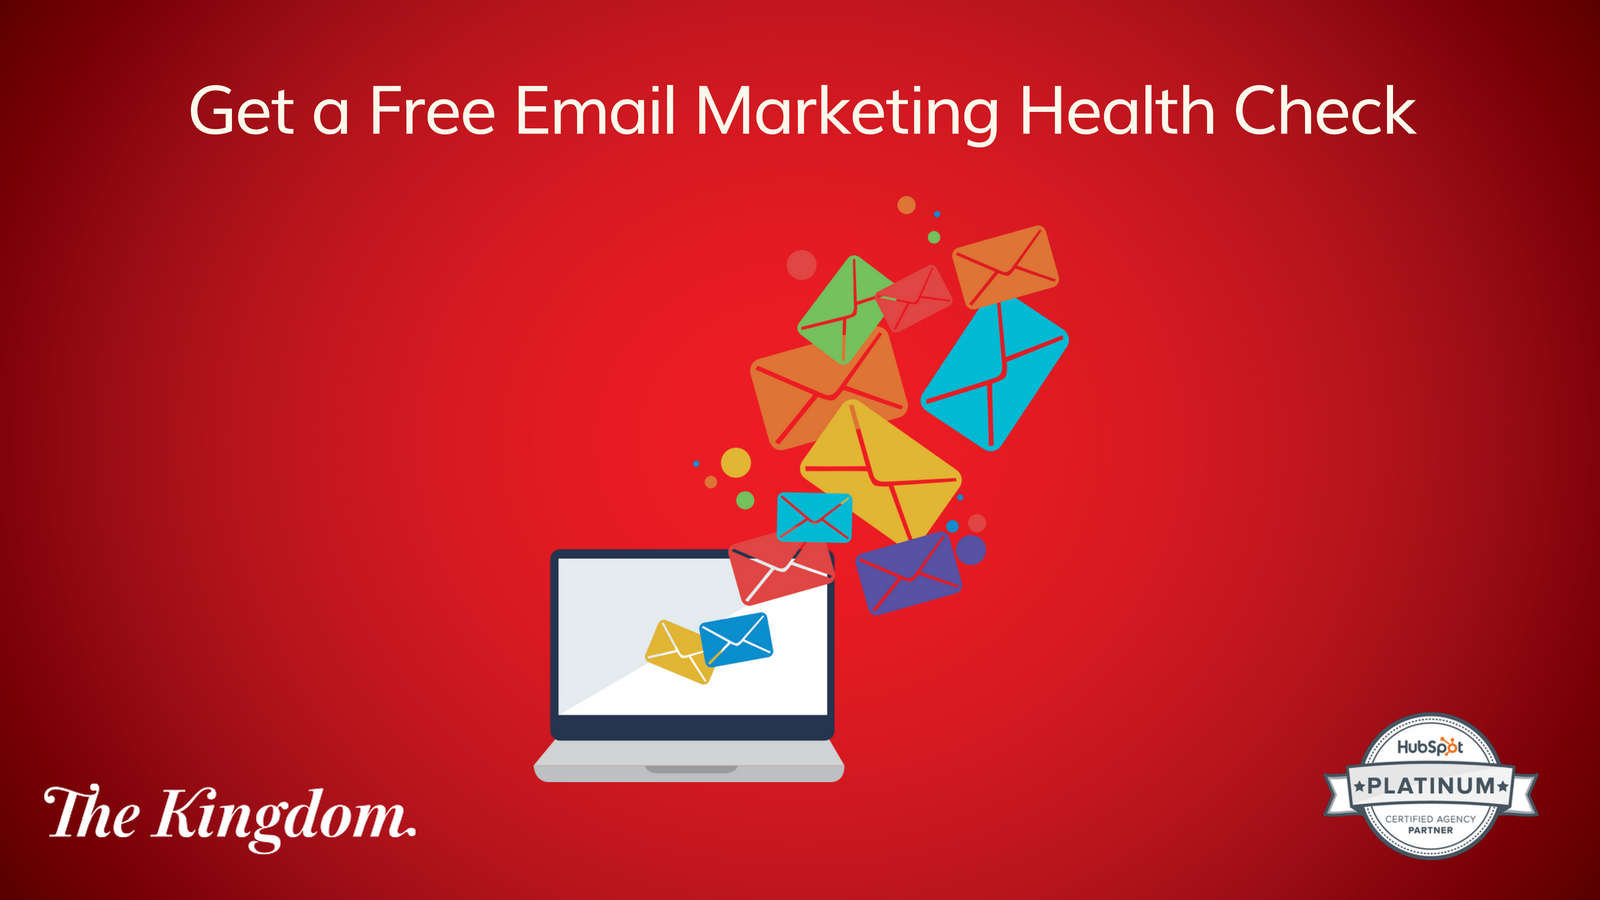 freeemailhealthcheck.png